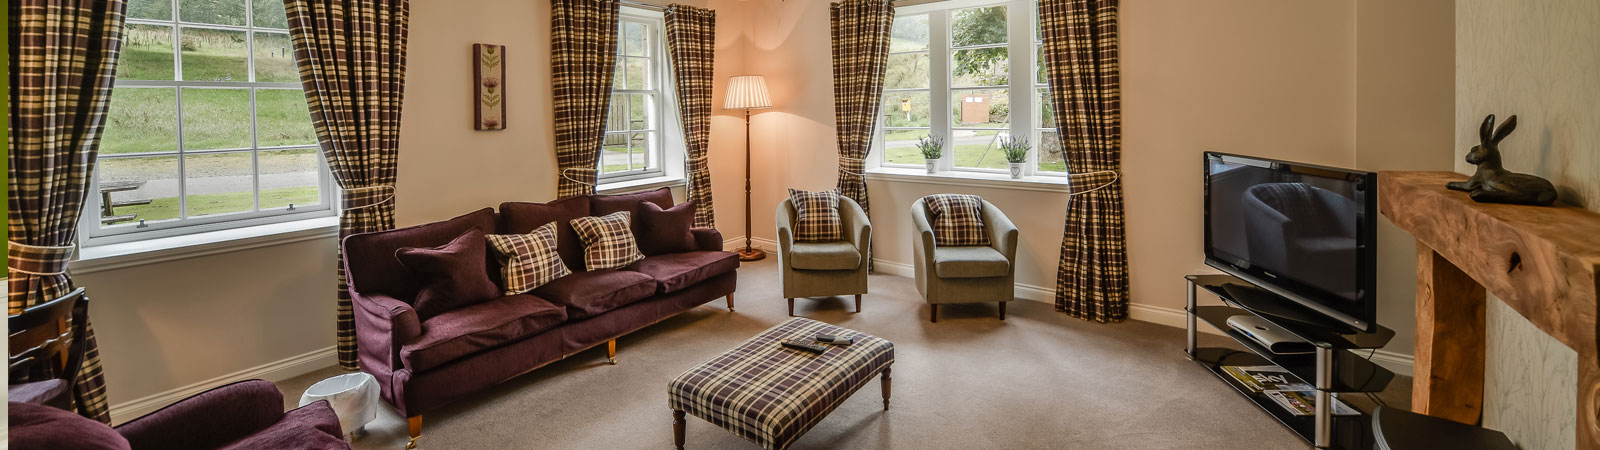 Self-catering cottages Ayrshire on secluded grounds Blairquhan Castle